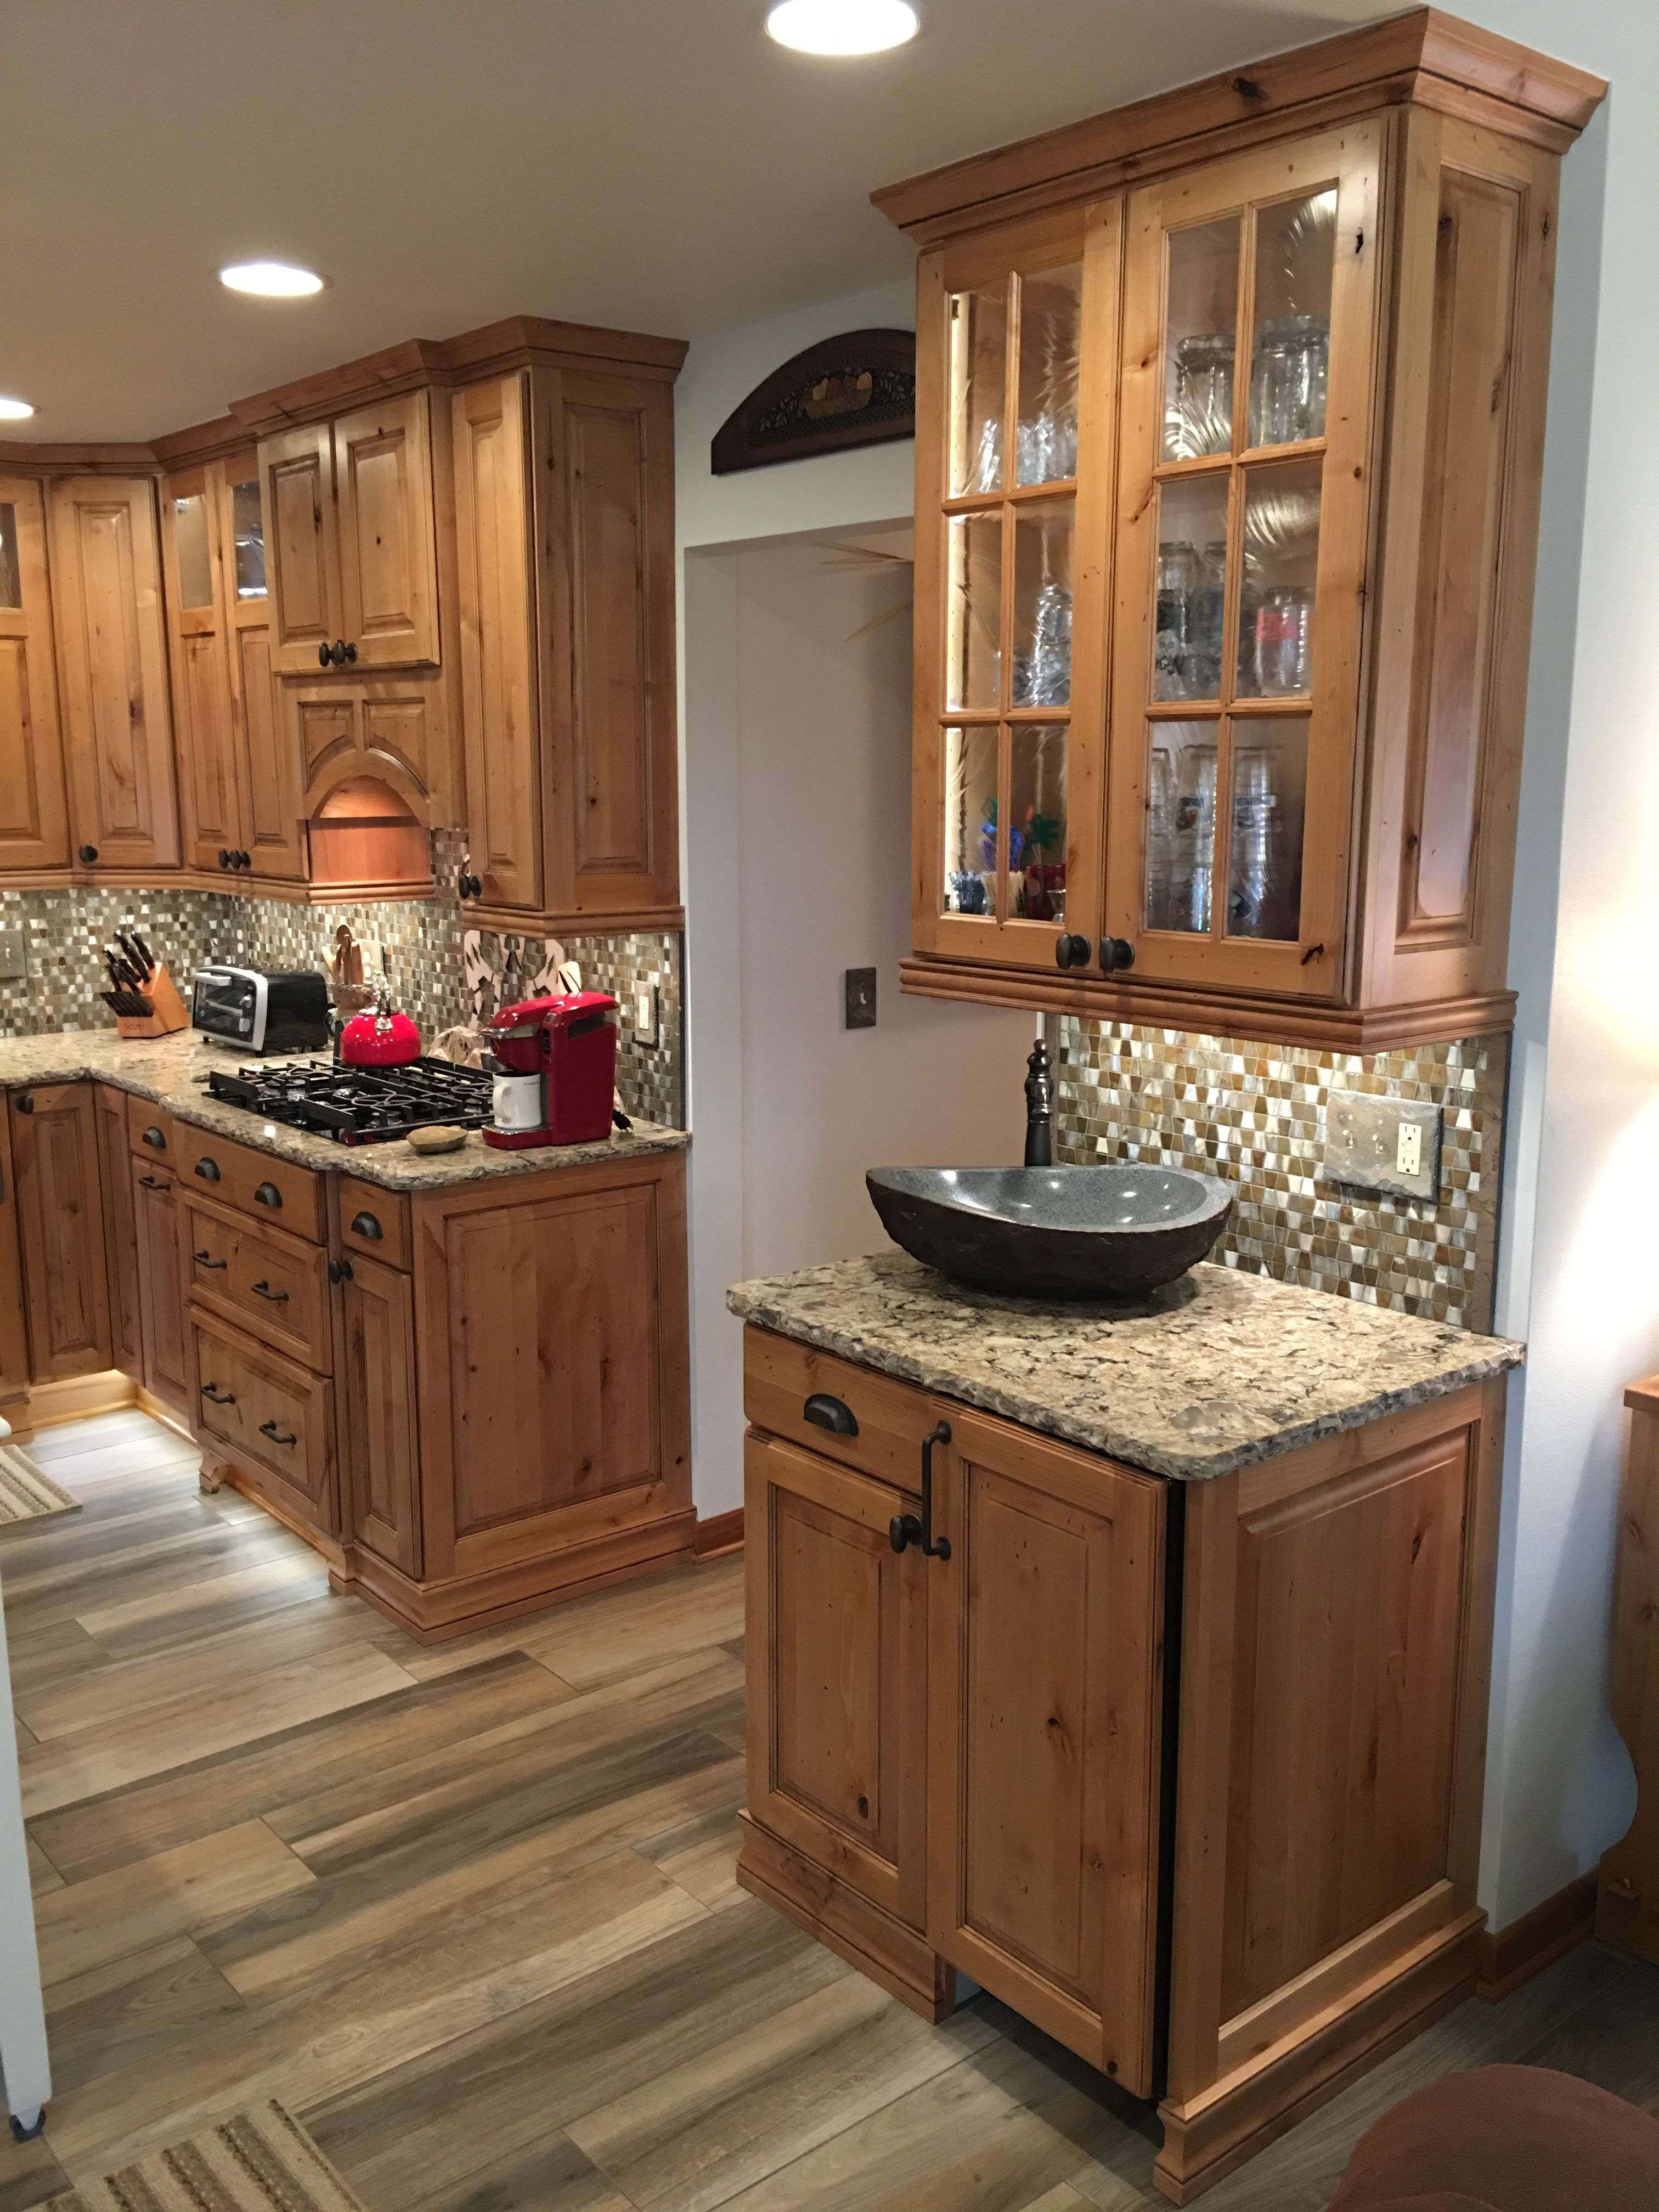 rustic kitchen new showplace cabinetry rustic alder natural stain with black glaze on kitchen ideas cabinets id=66314